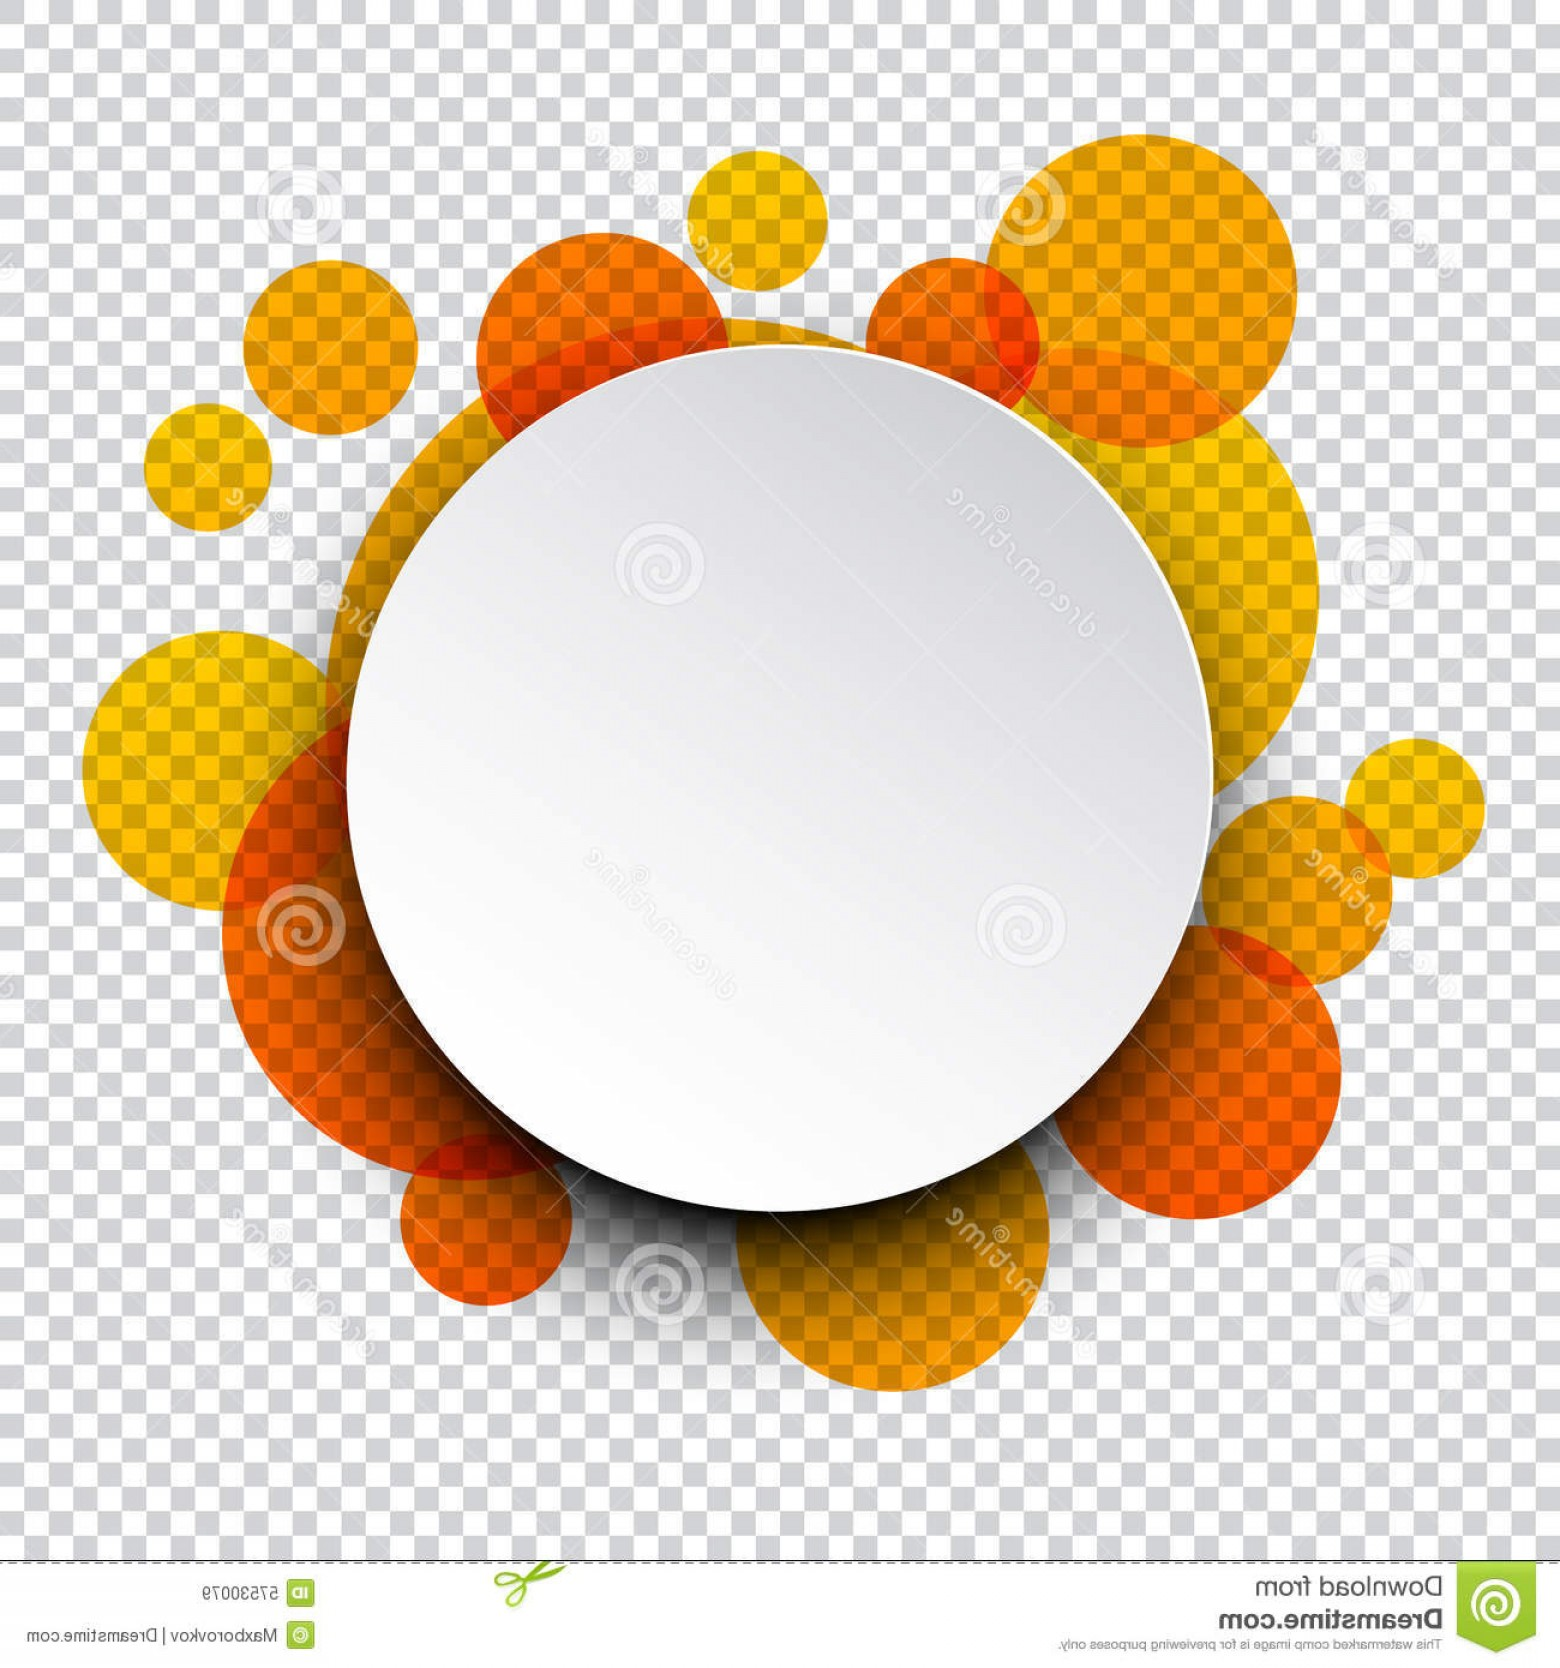 Vector Bubbles Circle: Stock Illustration White Paper Label Over Orange Bubbles Vector Illustration Round Speech Bubble Circles Eps Image